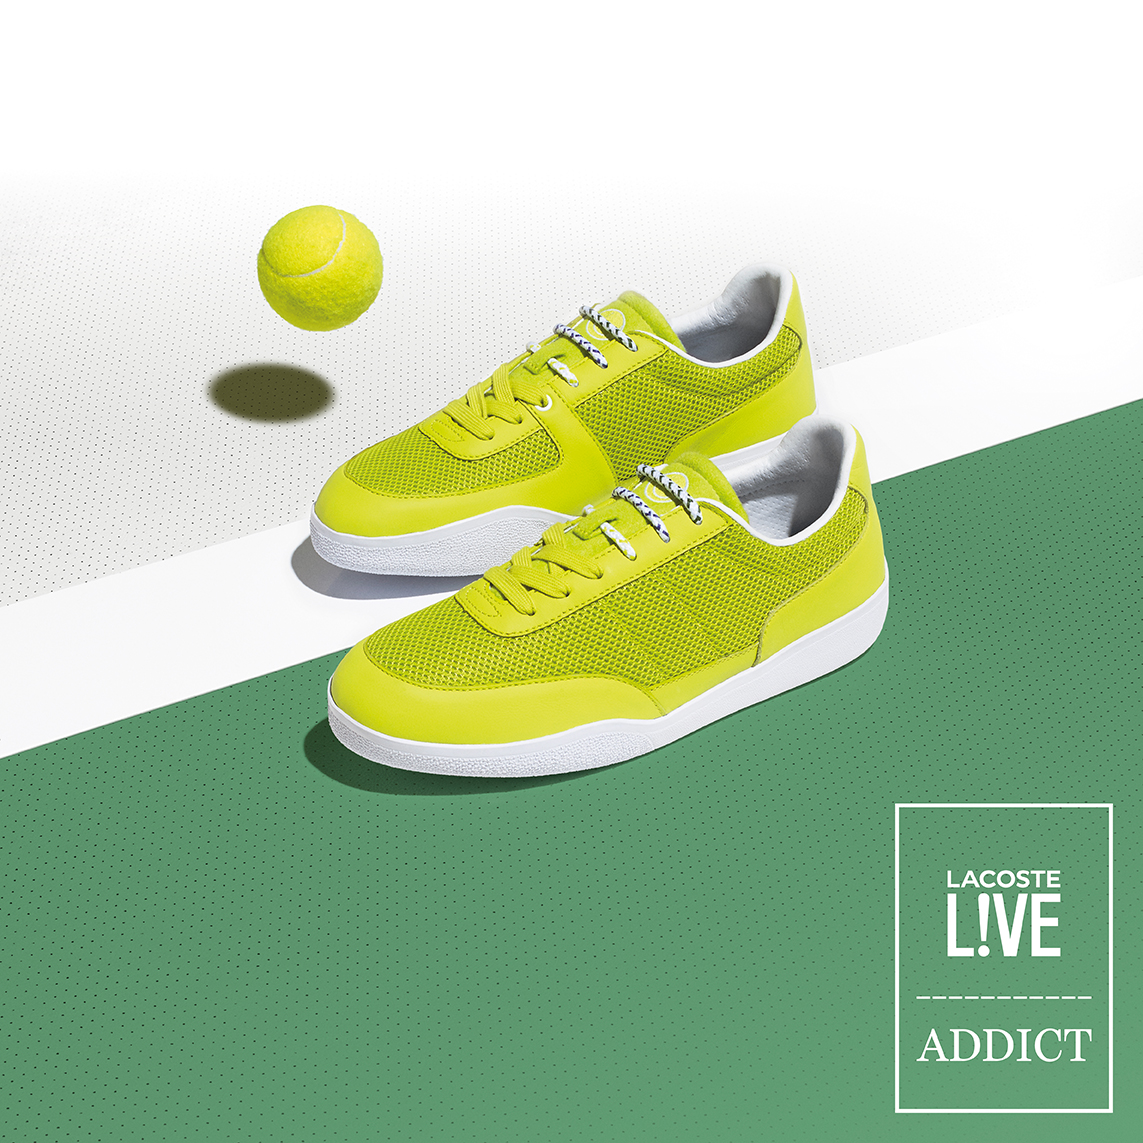 lacoste-live-addict-miami-sneakers